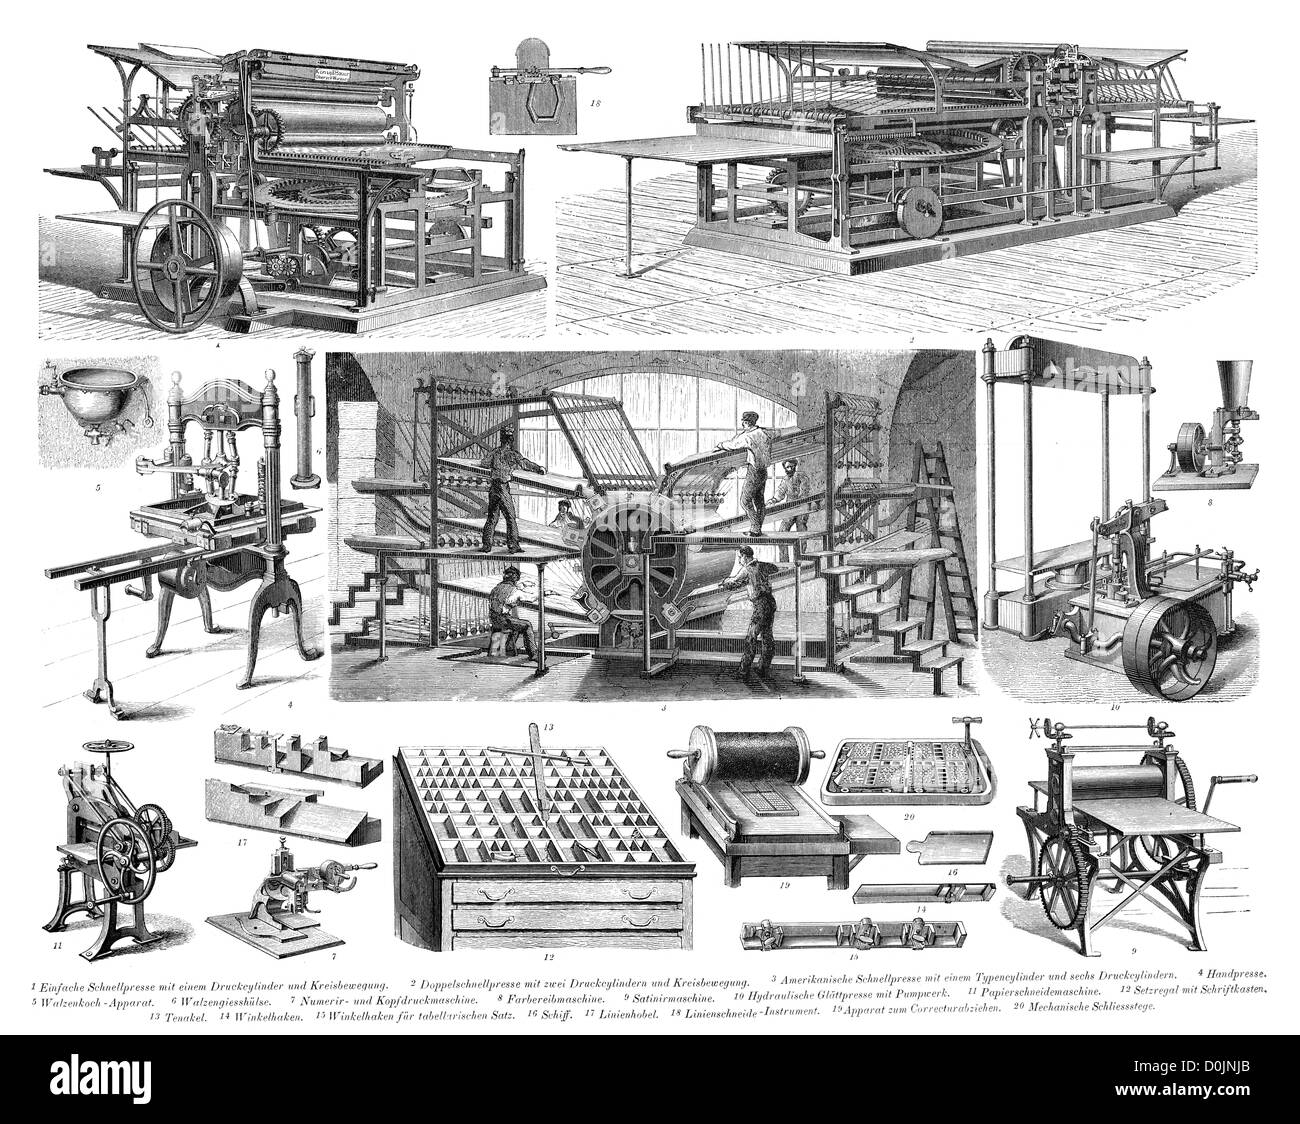 19th Century Printing Press Stock Photos Diagram Year 1 And 2 Context Rotary Collection Of Machines From The Industrial Revolution Including Old Presses Image